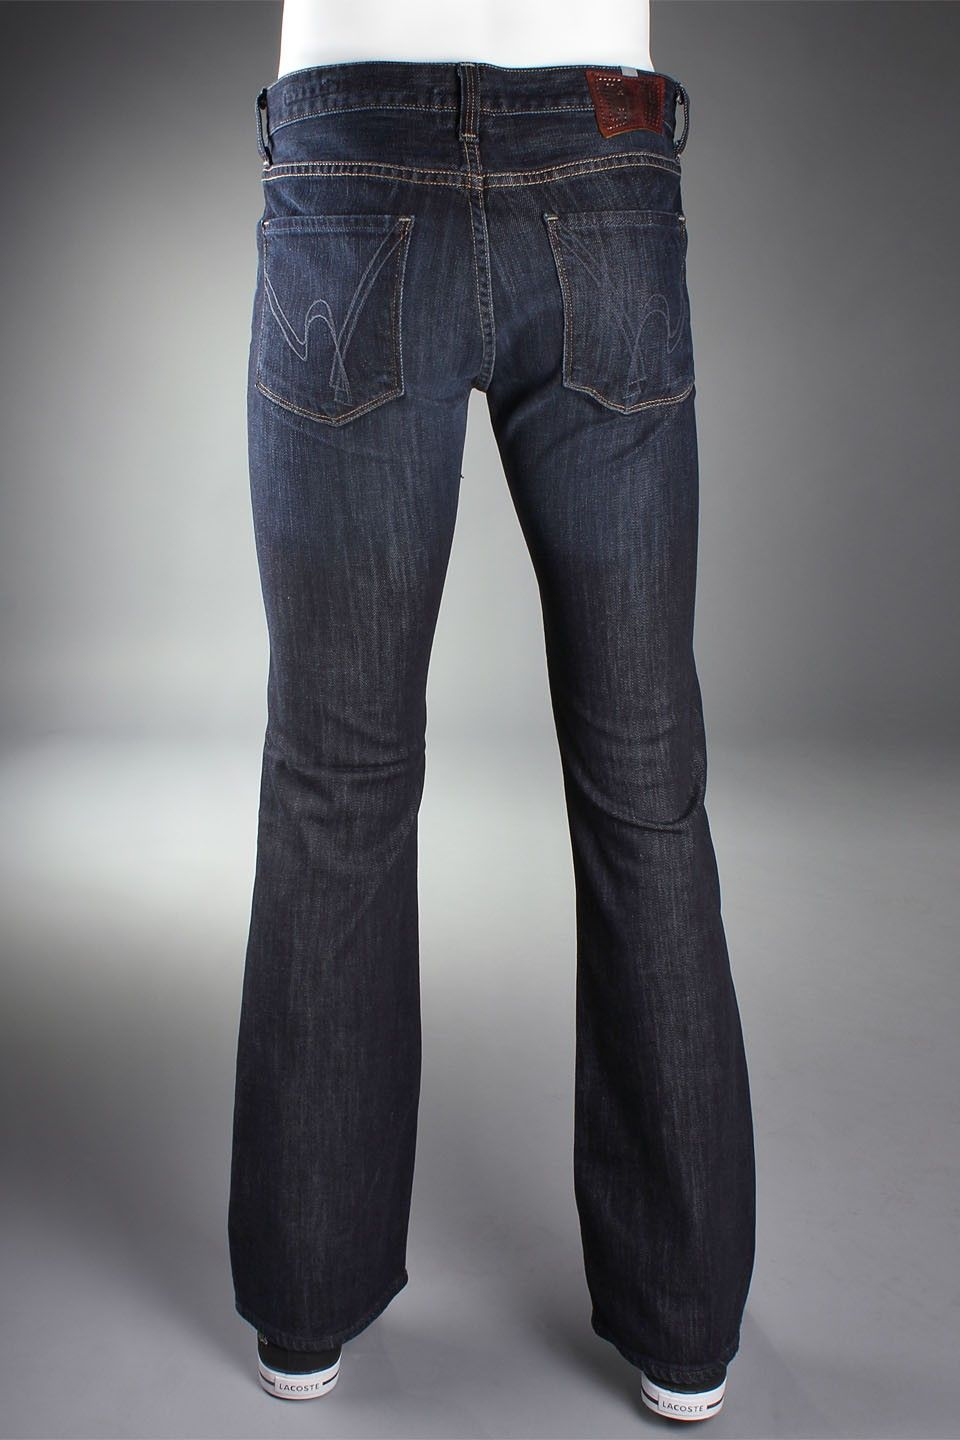 Womens dark blue bootcut jeans